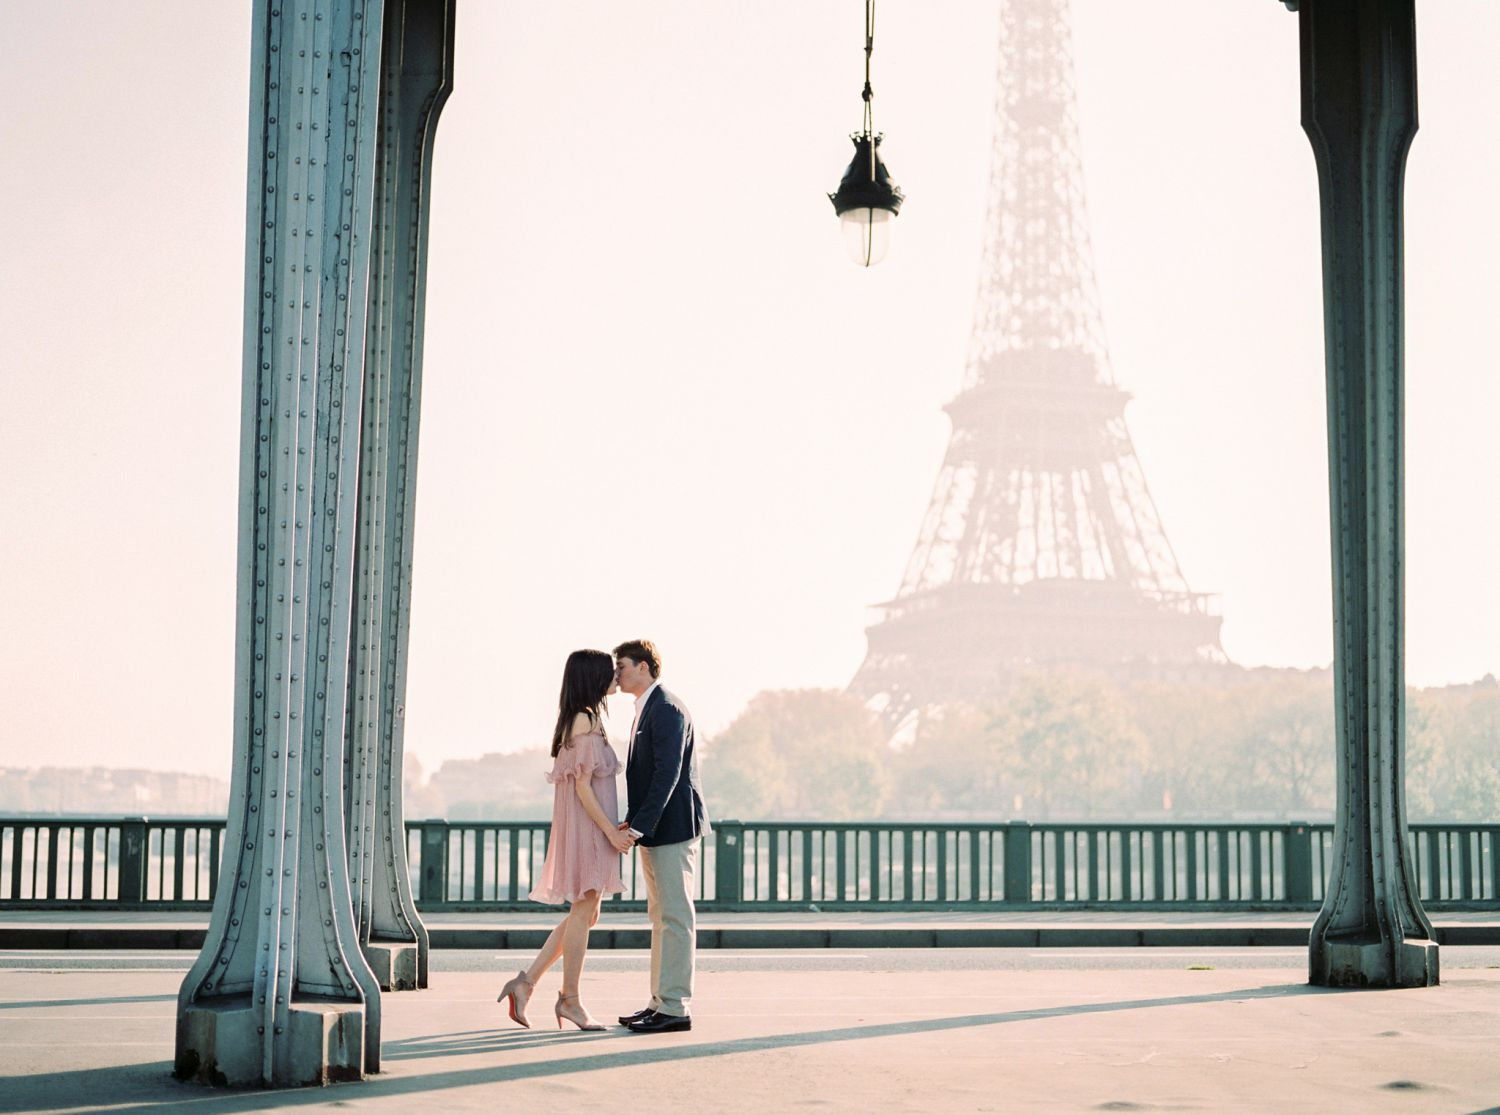 Paris romantic engagement photos